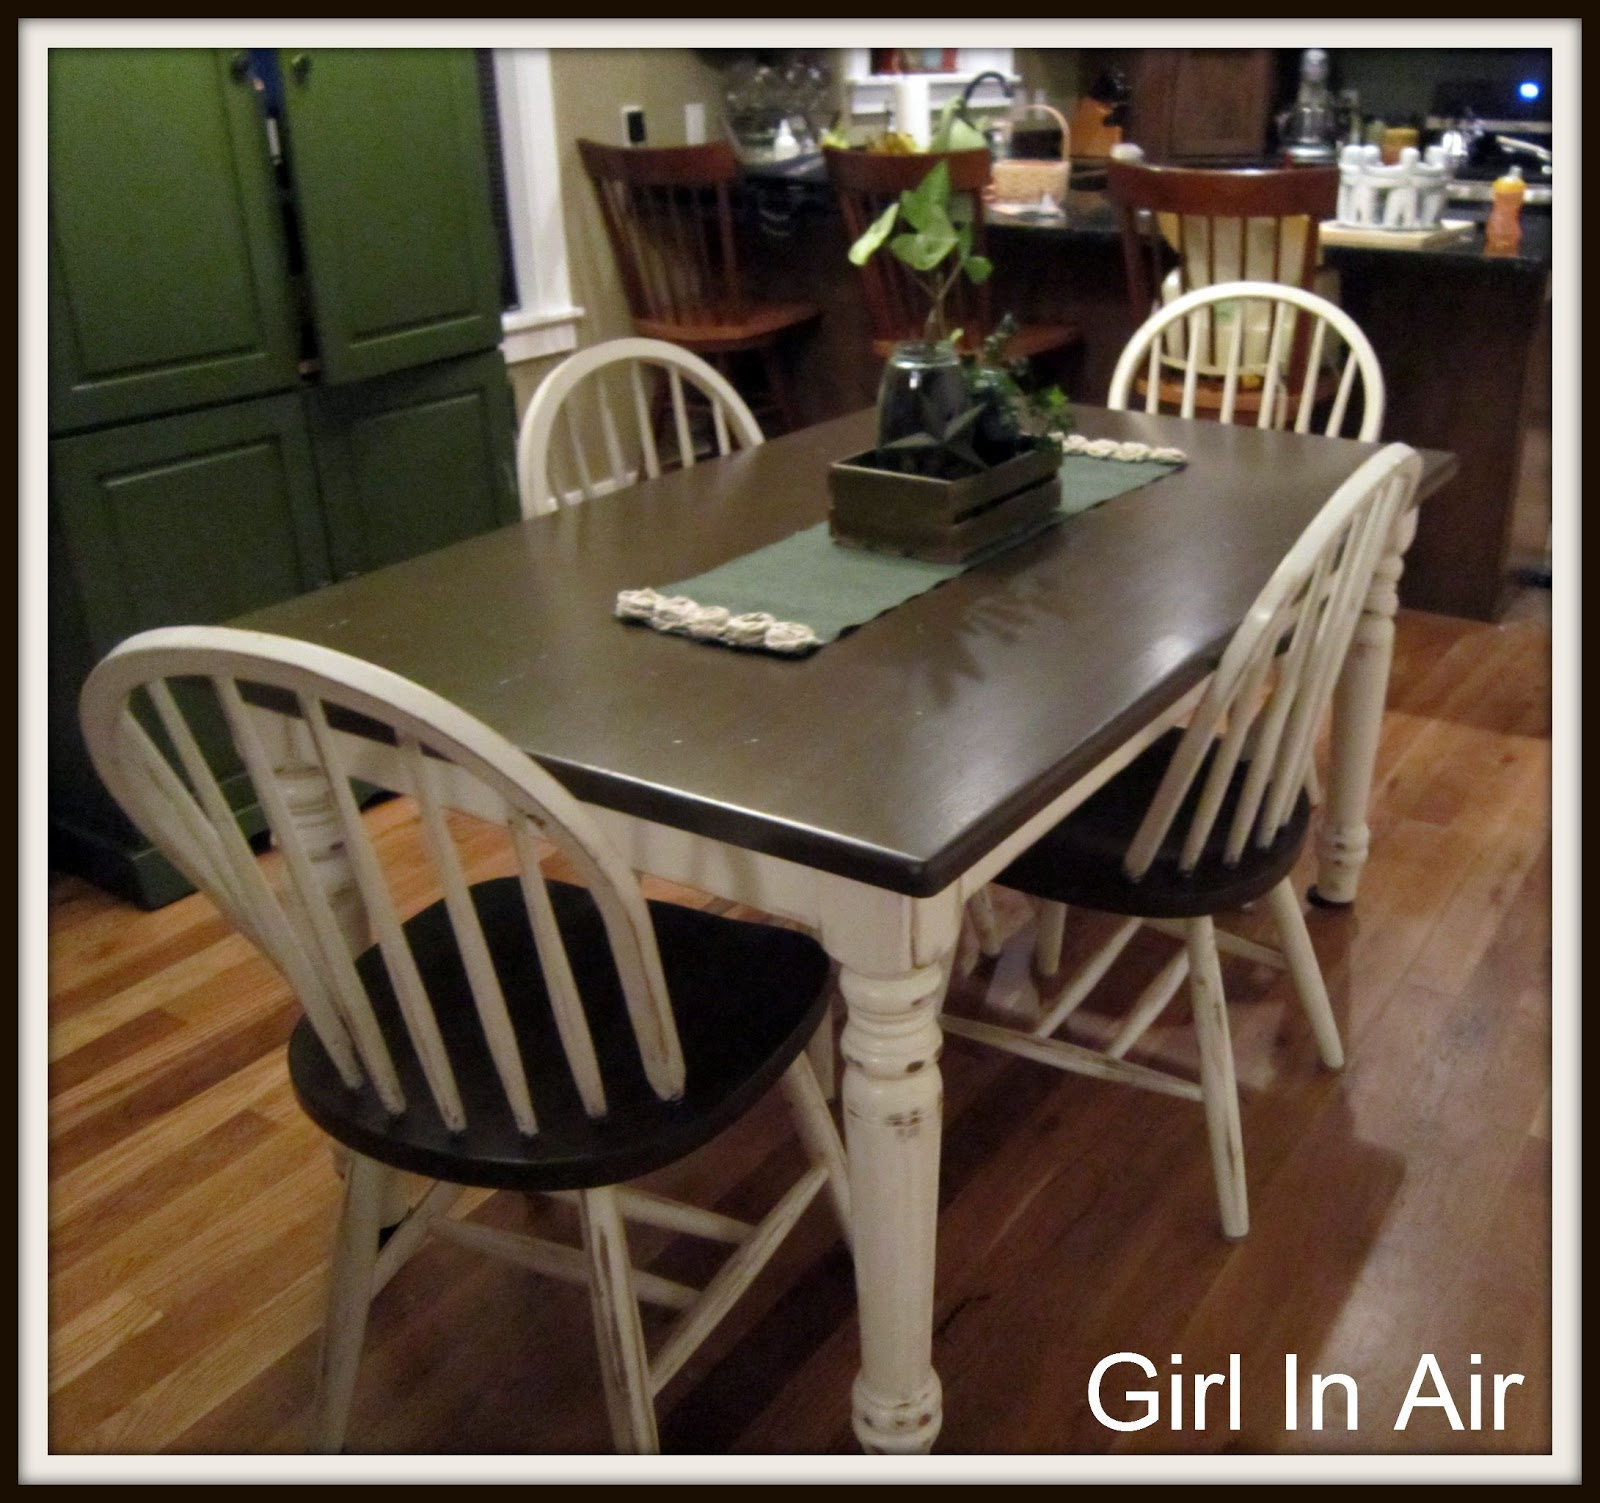 Girl in Air BLOG Staining and Distressing a Table and Chairs